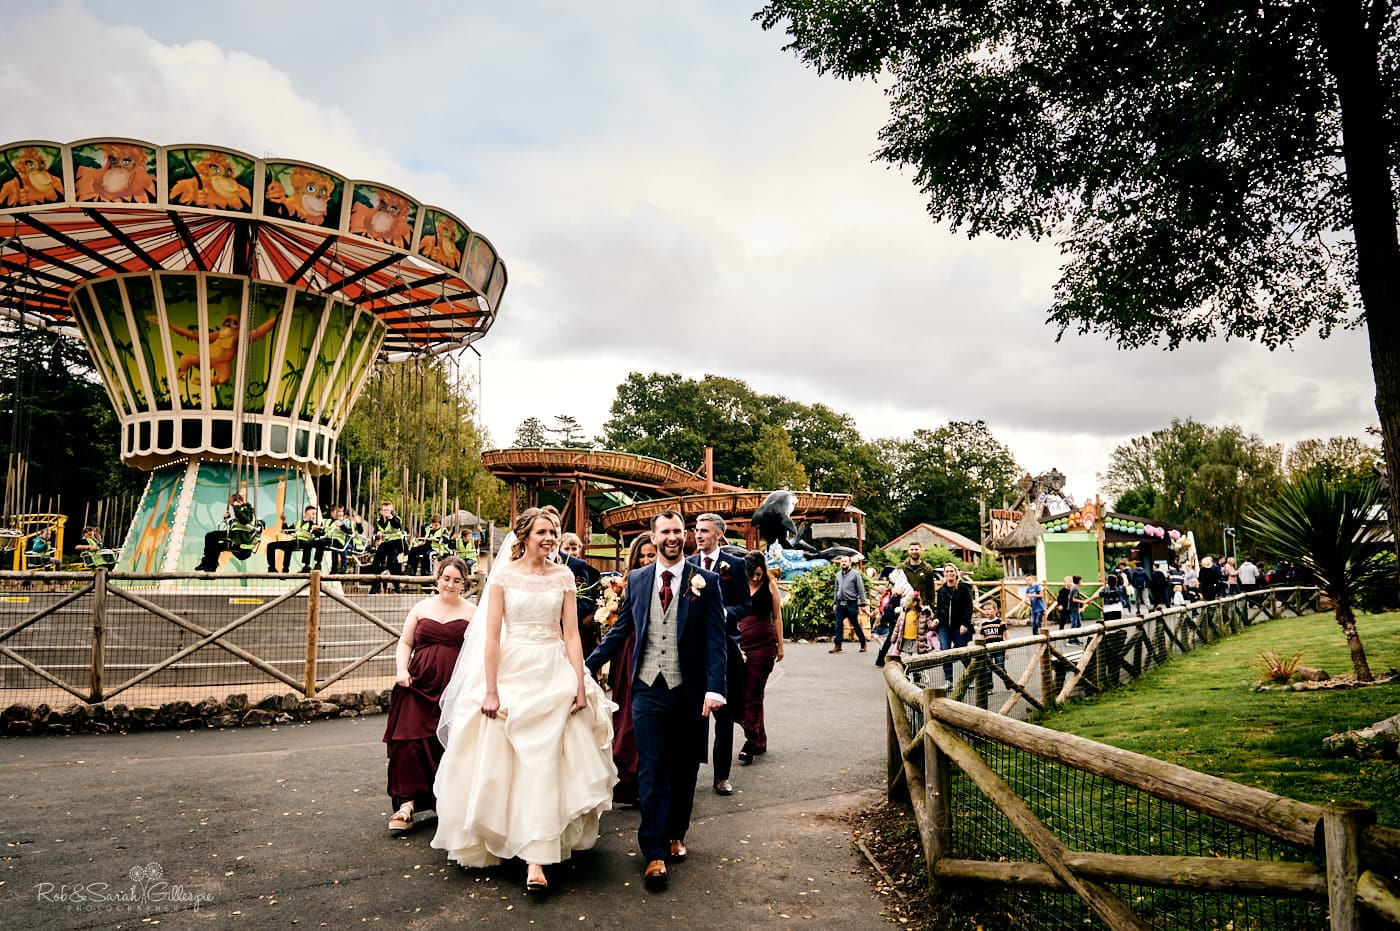 Bridal party walk through fairground